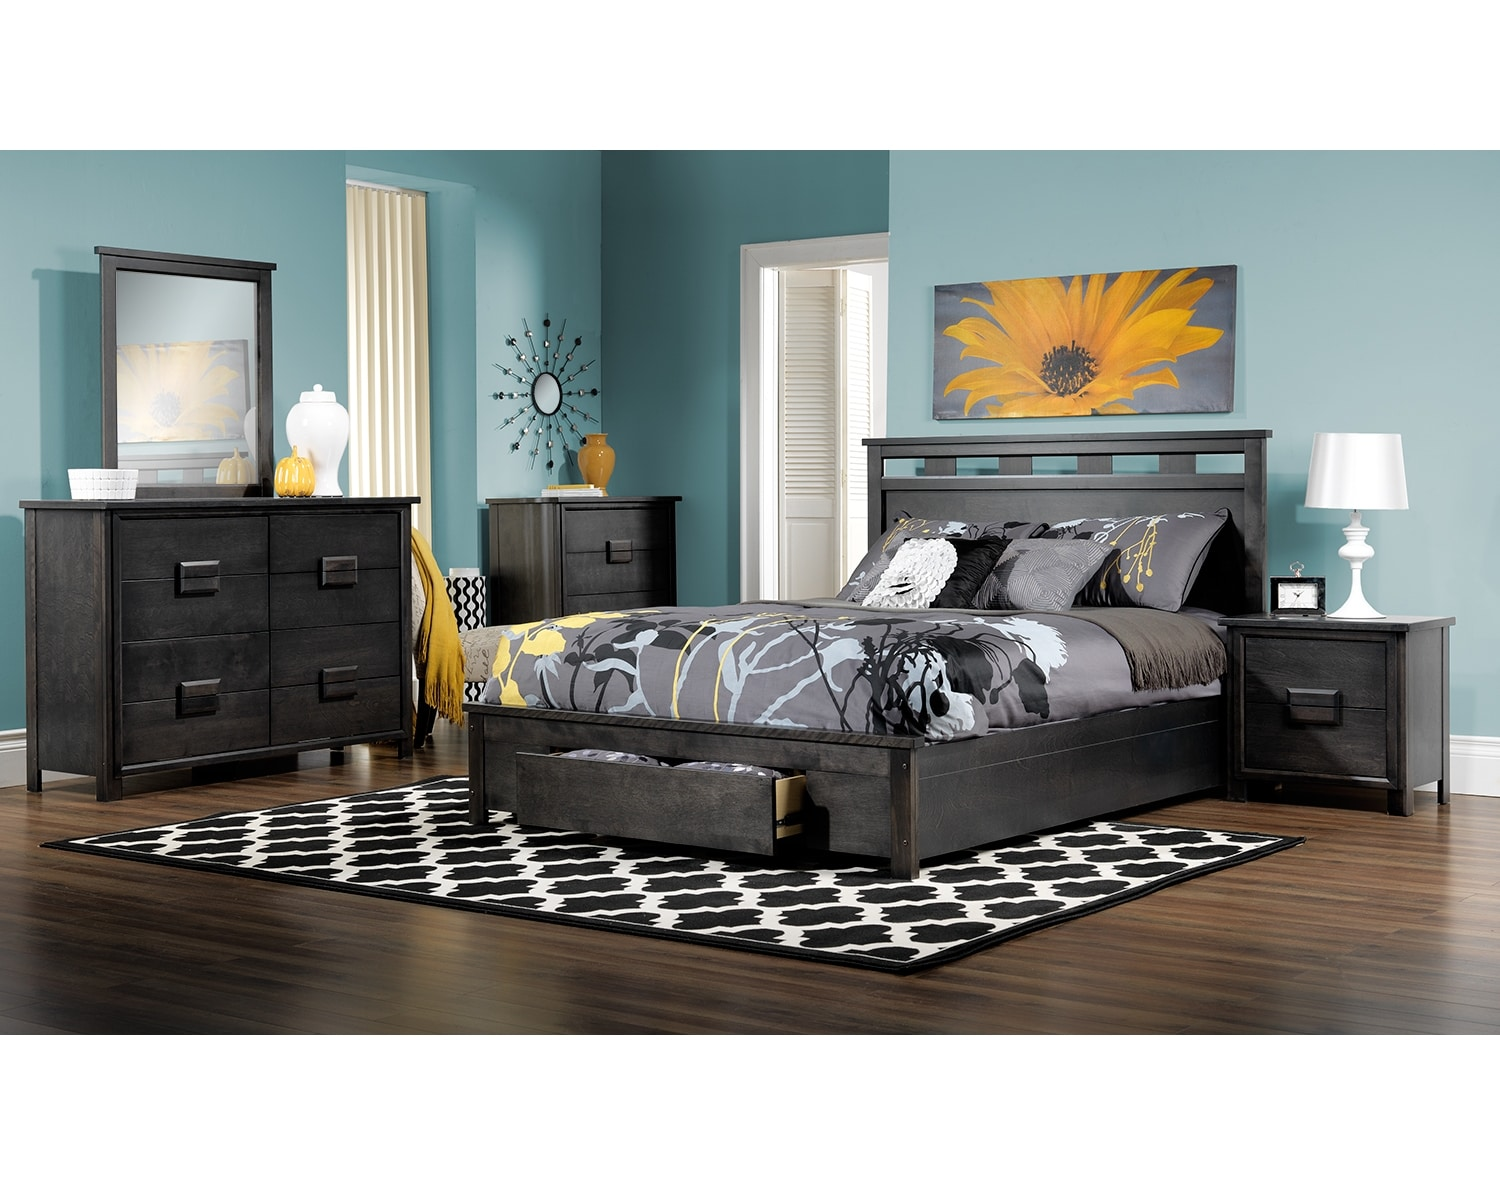 coffee table leons images coffee table leons with bedroom kitchener ii fireplace credenza leon s